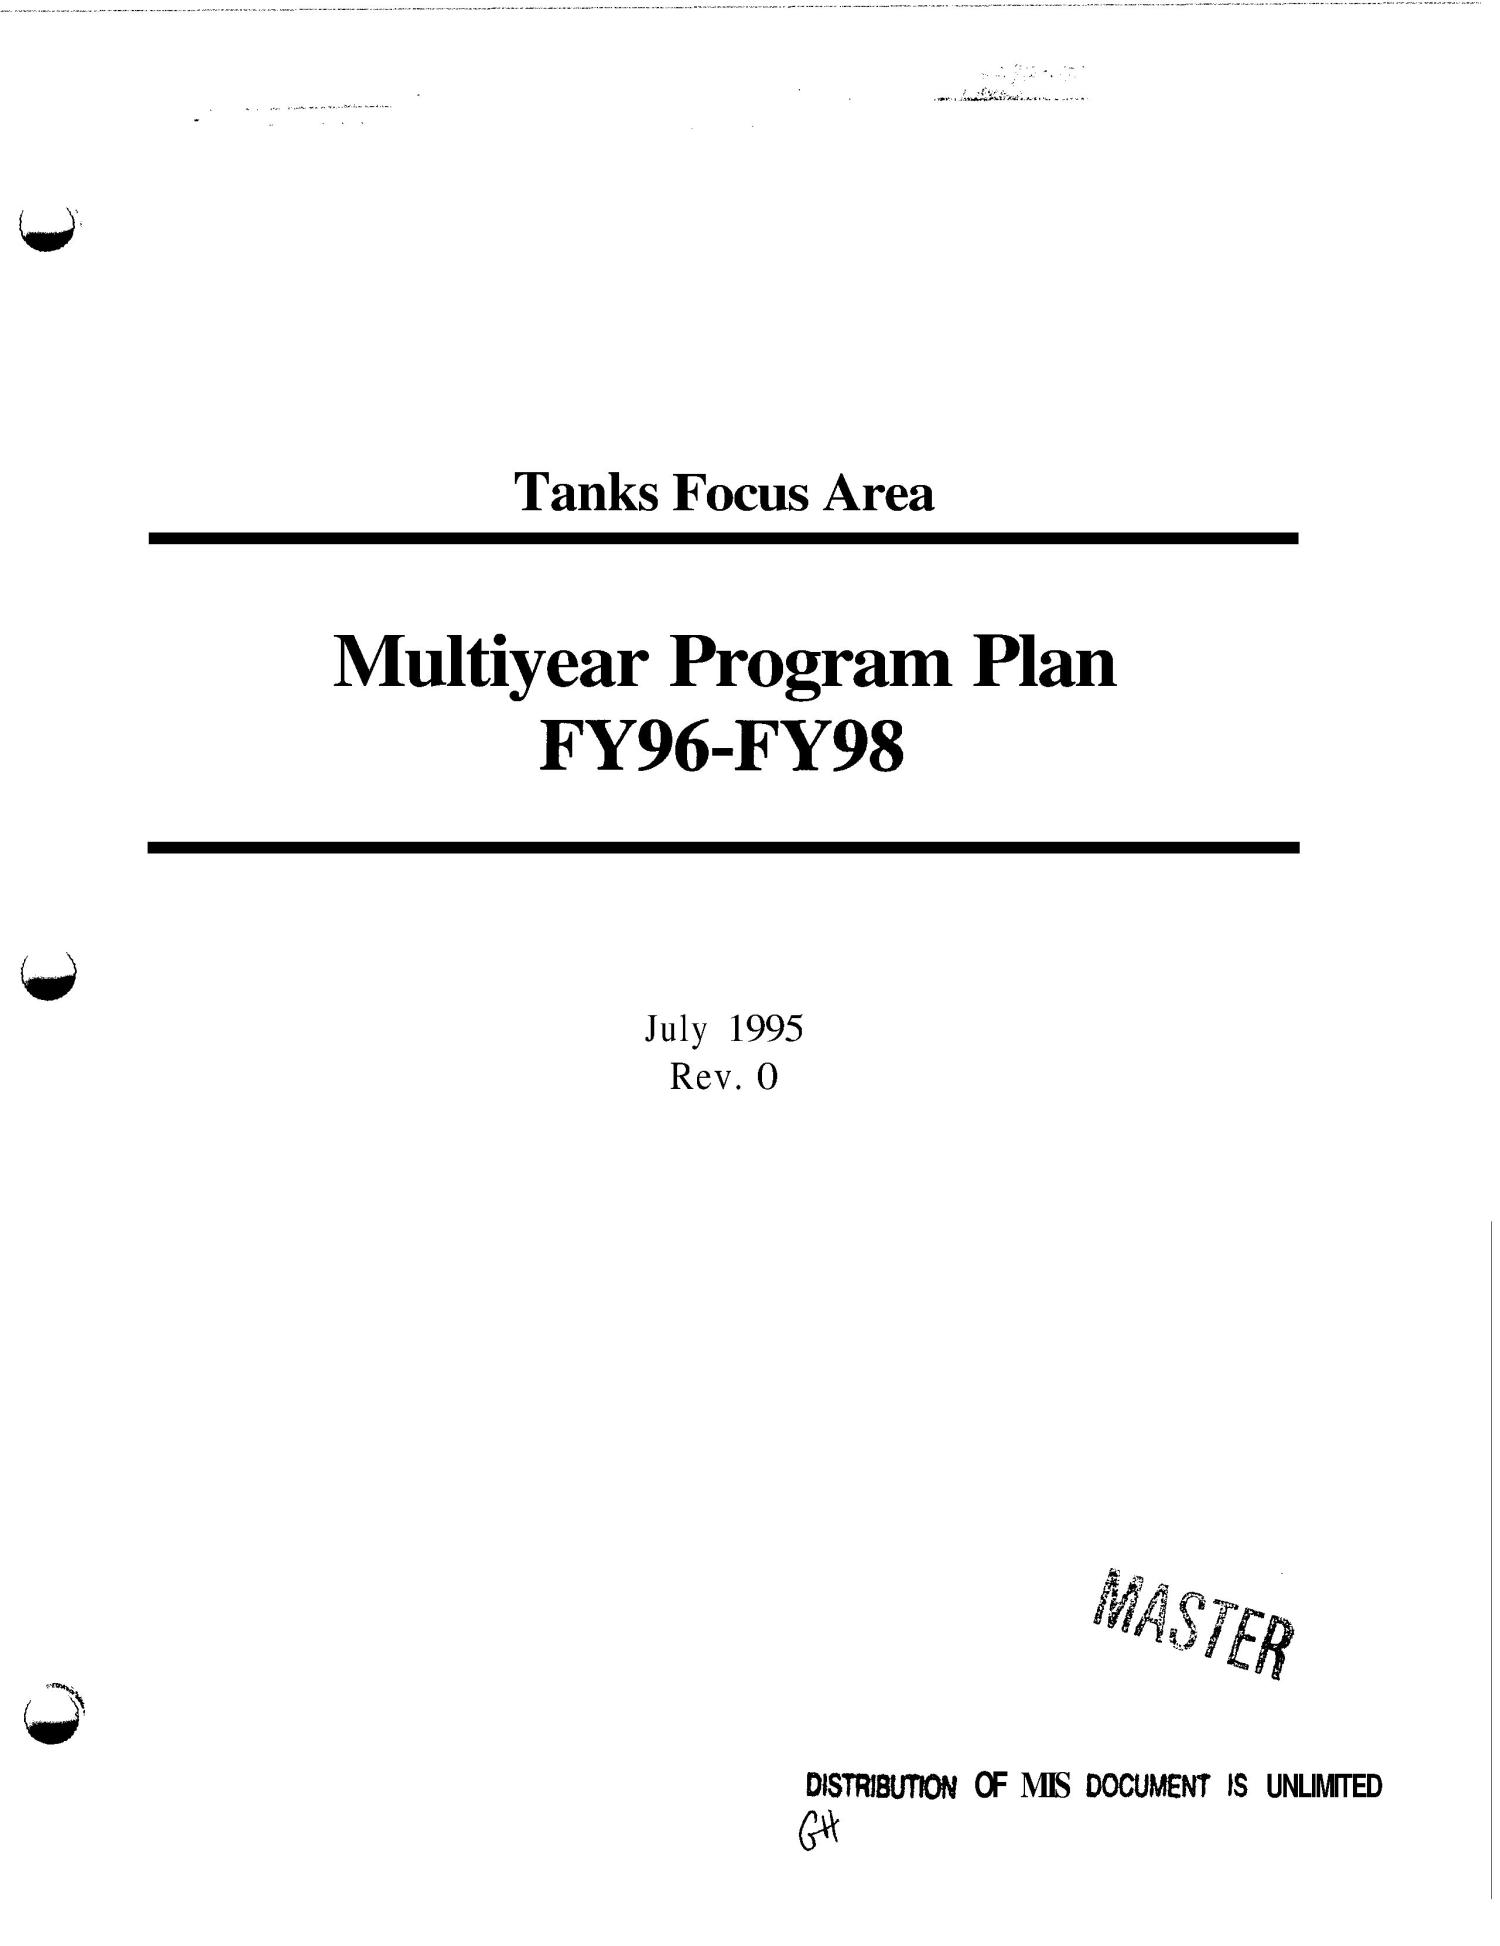 Tanks focus area multiyear program plan - FY96-FY98                                                                                                      [Sequence #]: 1 of 178